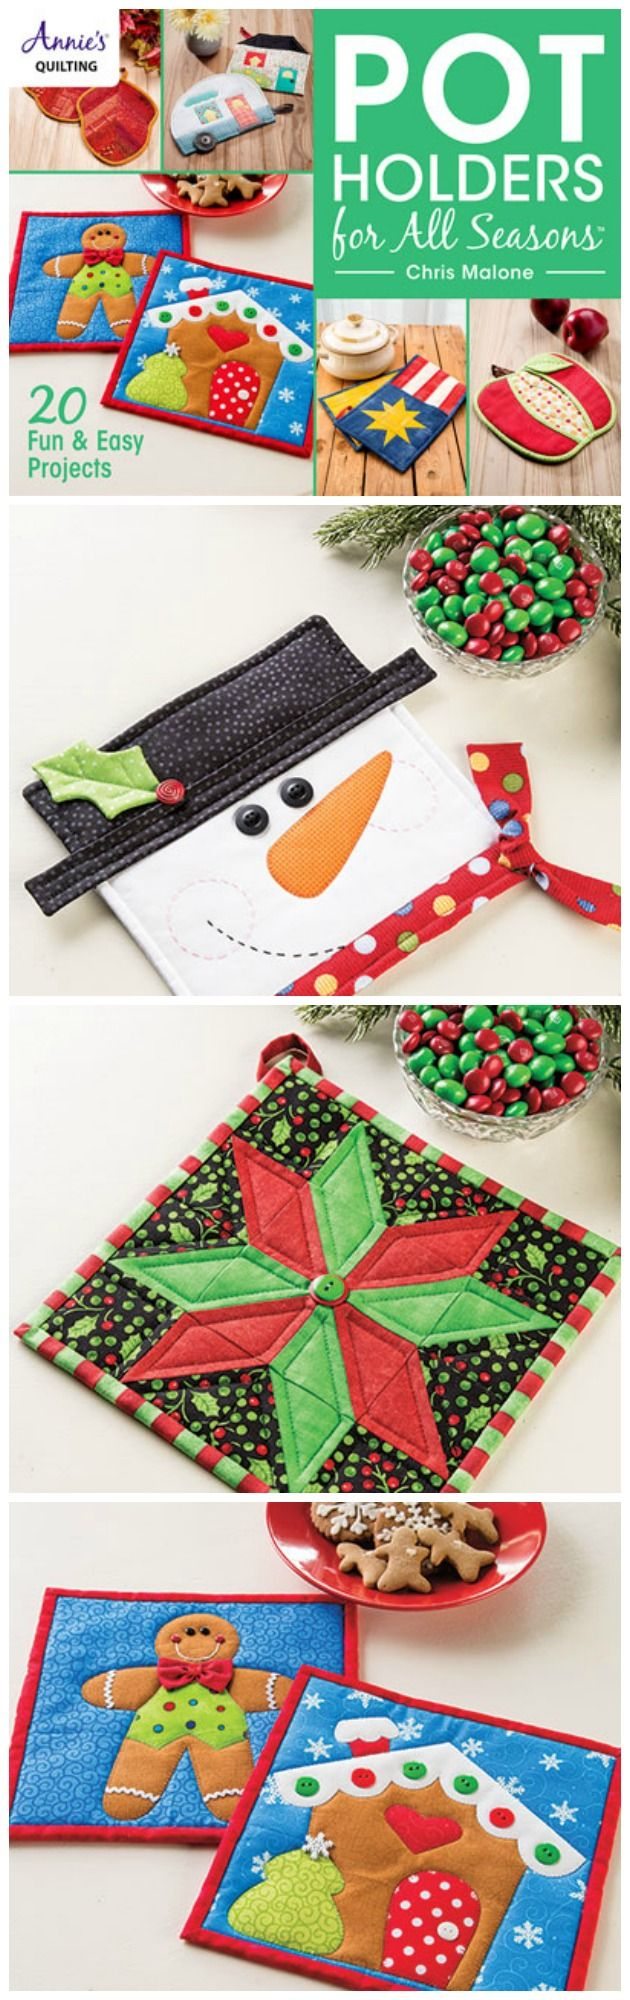 2 potholder sewing patterns love these christmas ones great 2 potholder sewing patterns love these christmas ones great ideas to sew for jeuxipadfo Choice Image